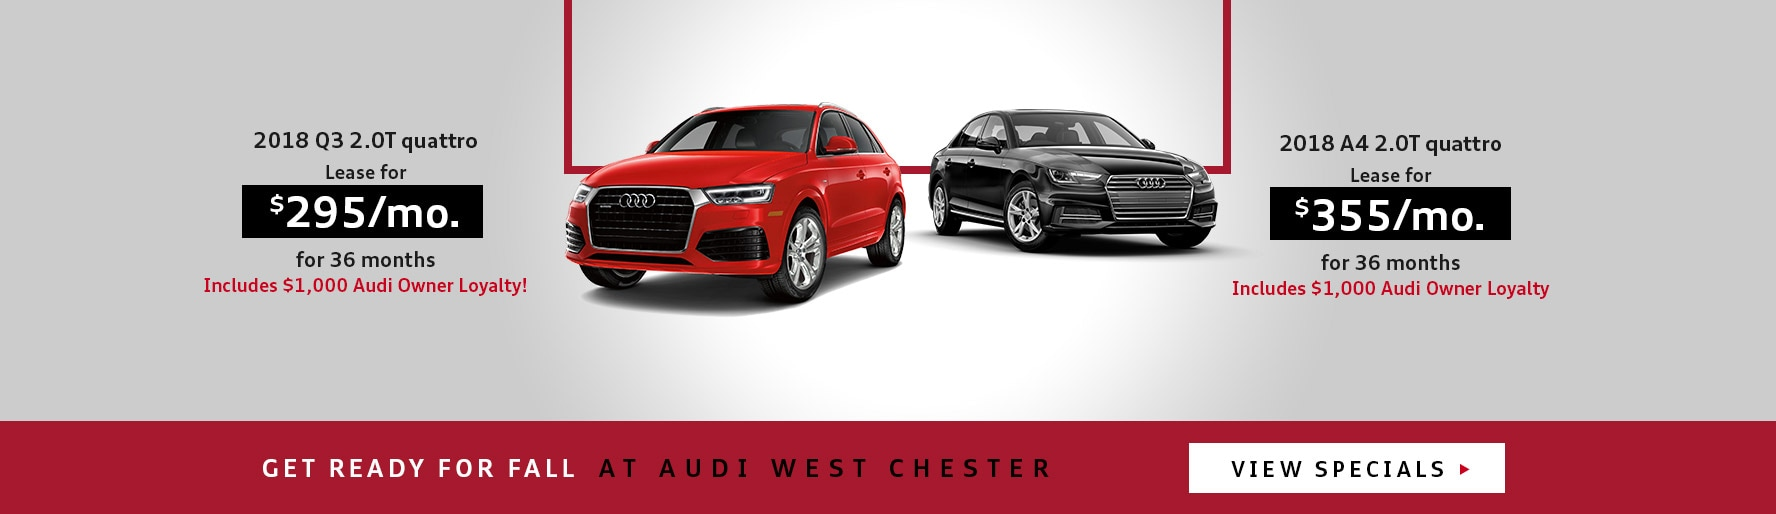 Welcome To Audi West Chester Pennsylvania Audi Dealer - Audi lease deals nj